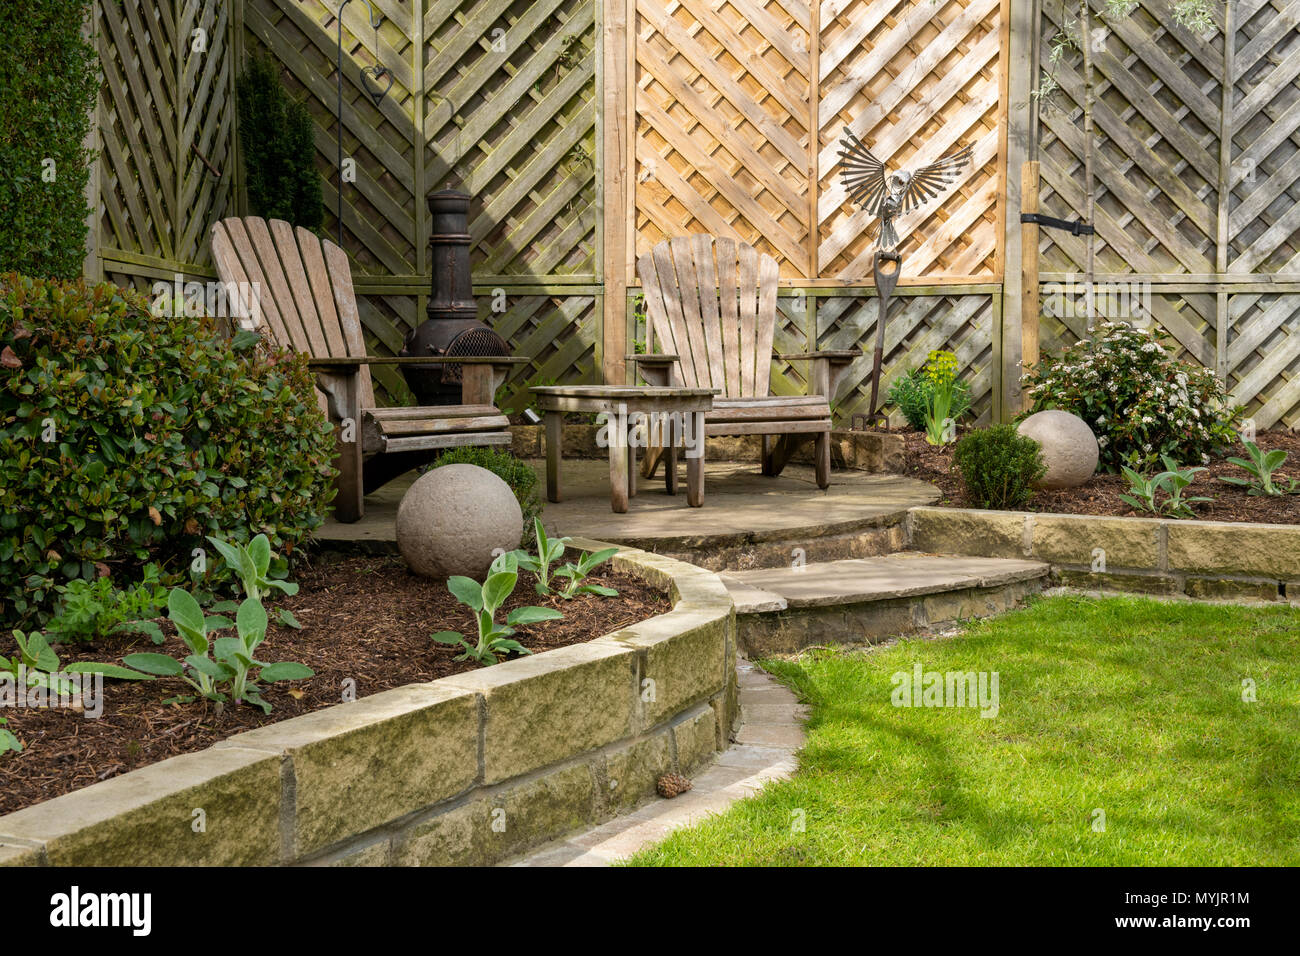 Beautiful, landscaped, private garden close-up with contemporary ...